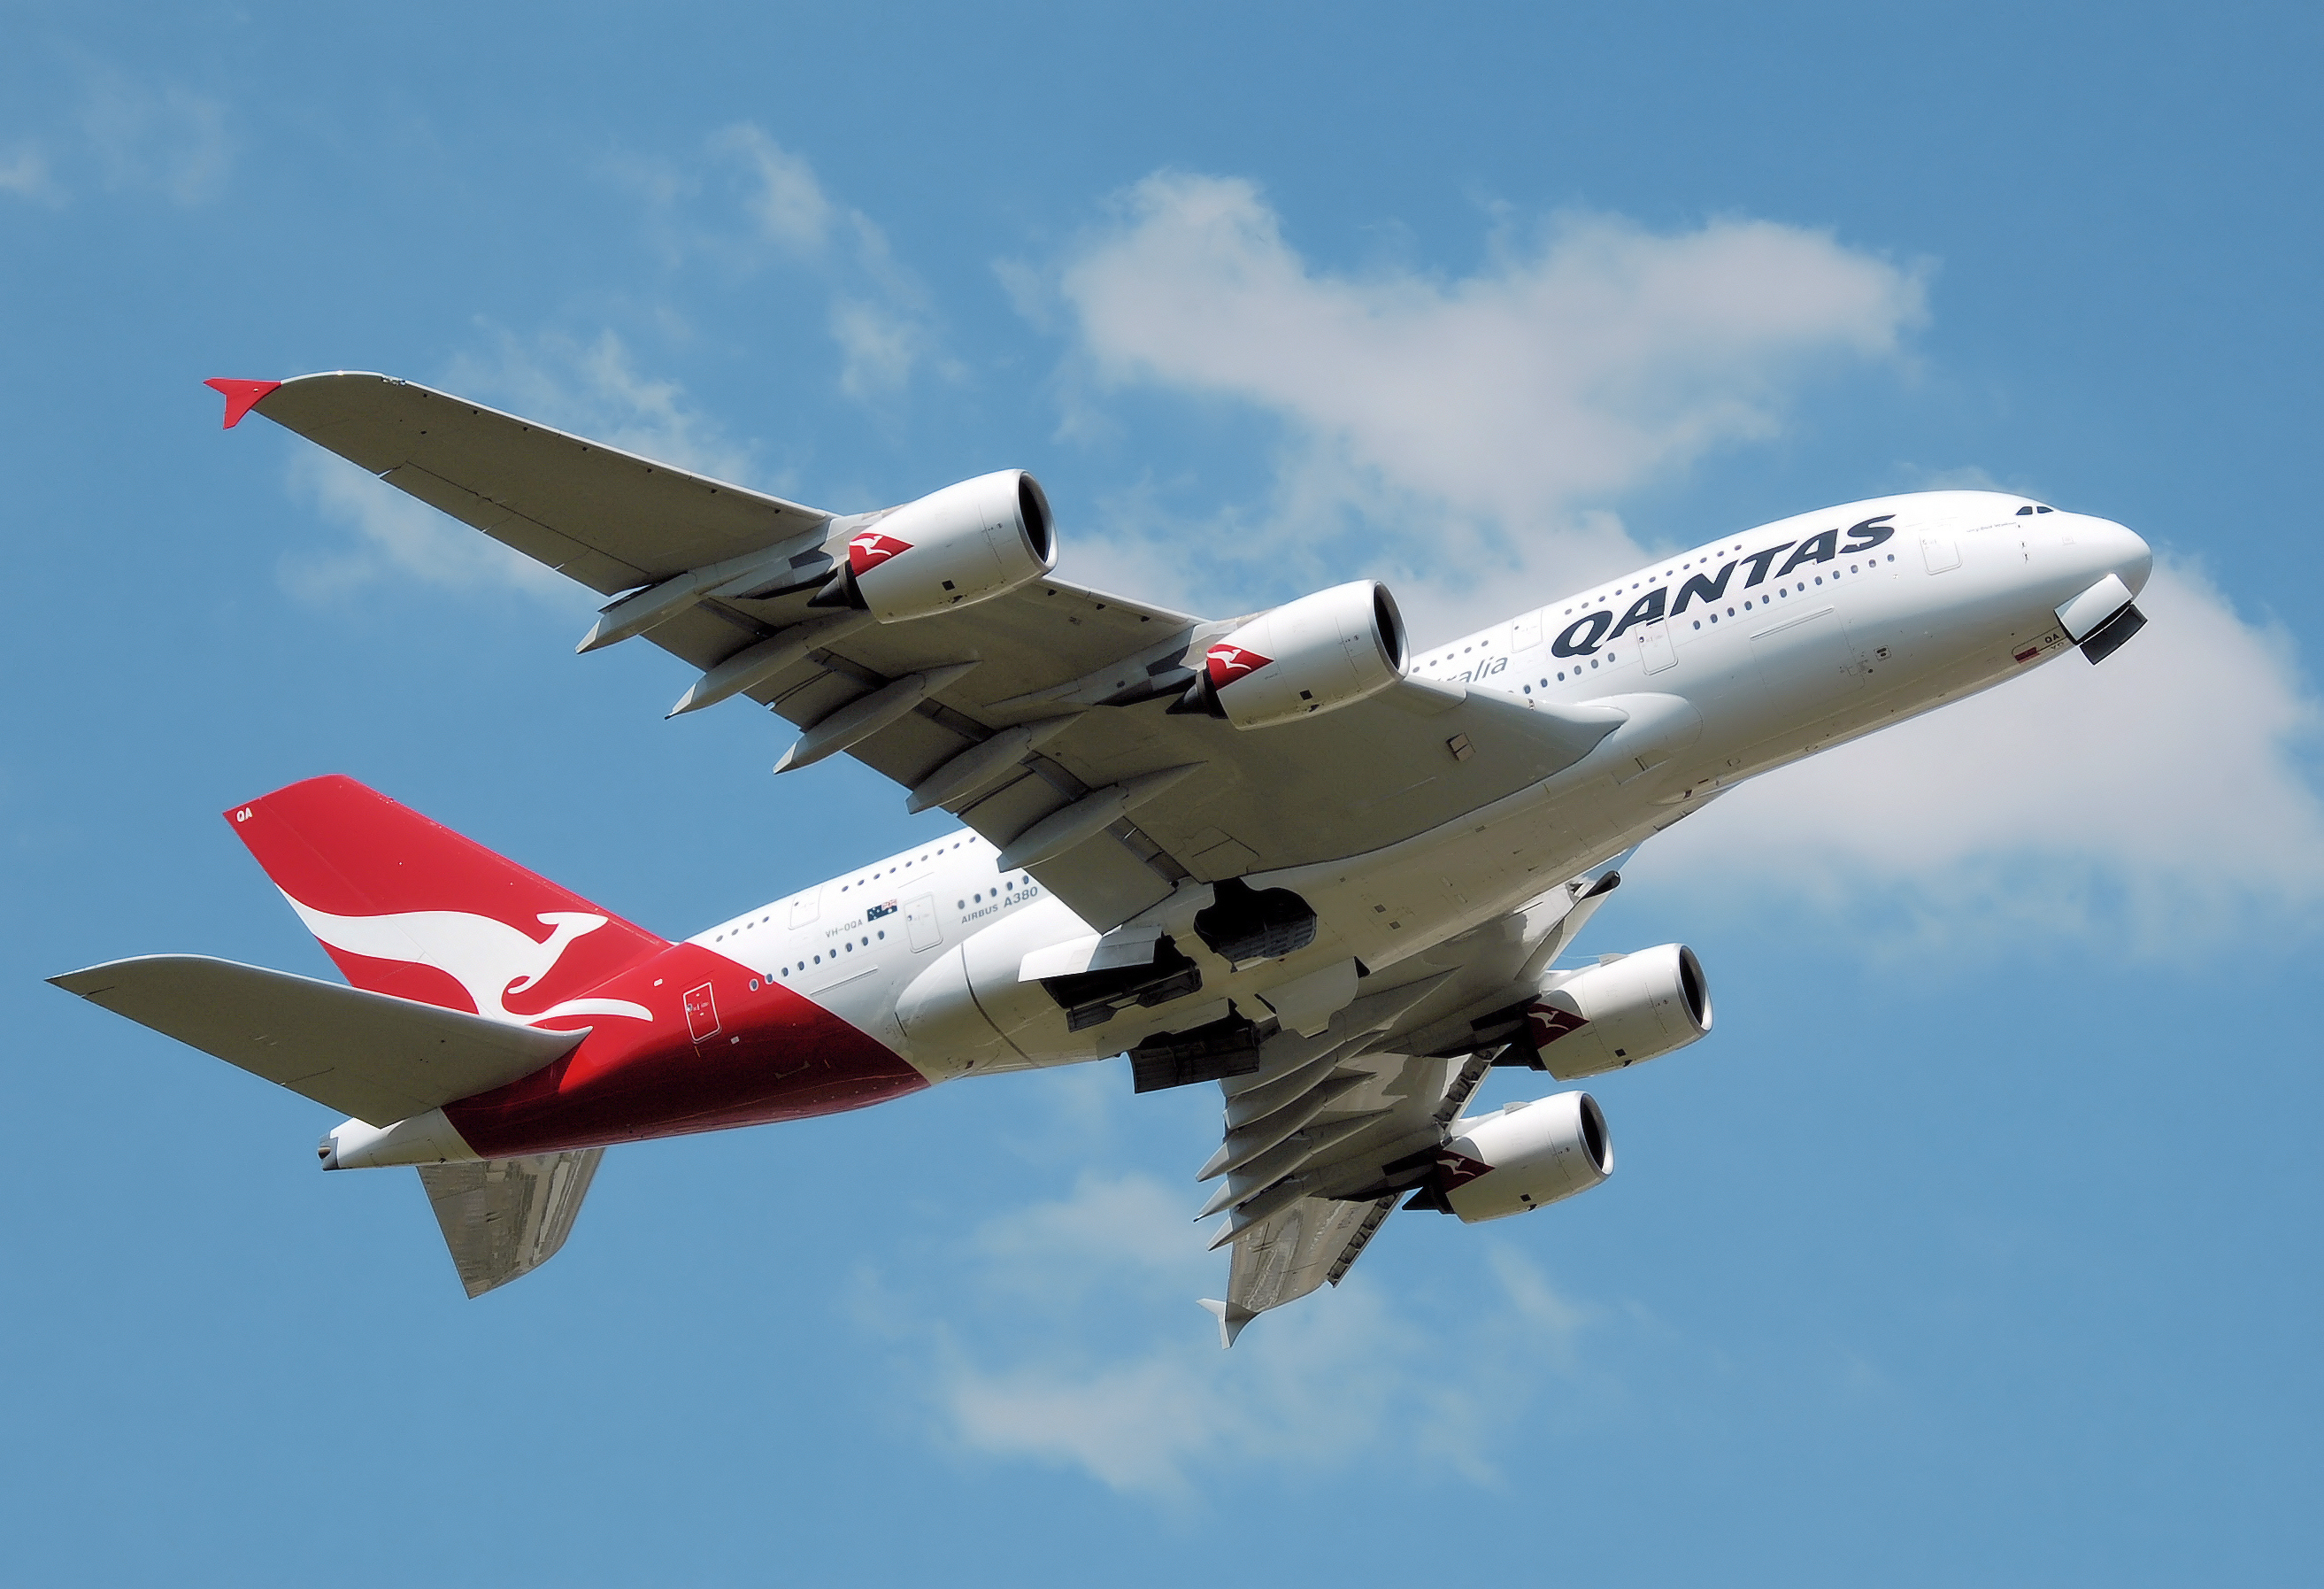 Qantas_a380_vh-oqa_takeoff_heathrow_arp.jpg